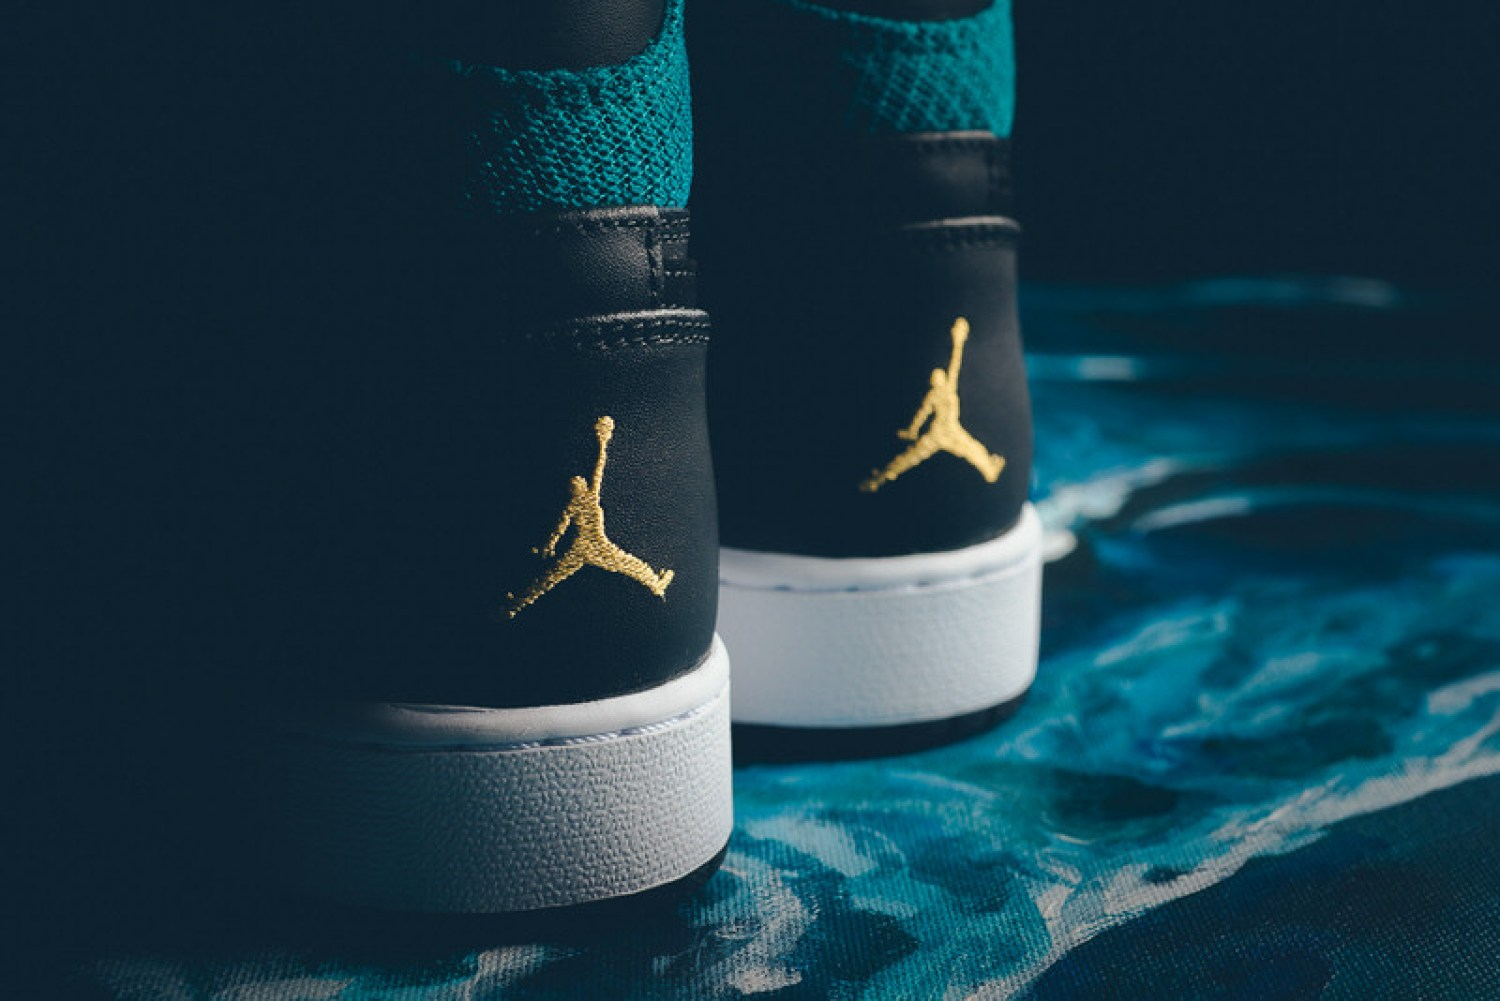 Air Jordan 1 GG Black/Rio Teal